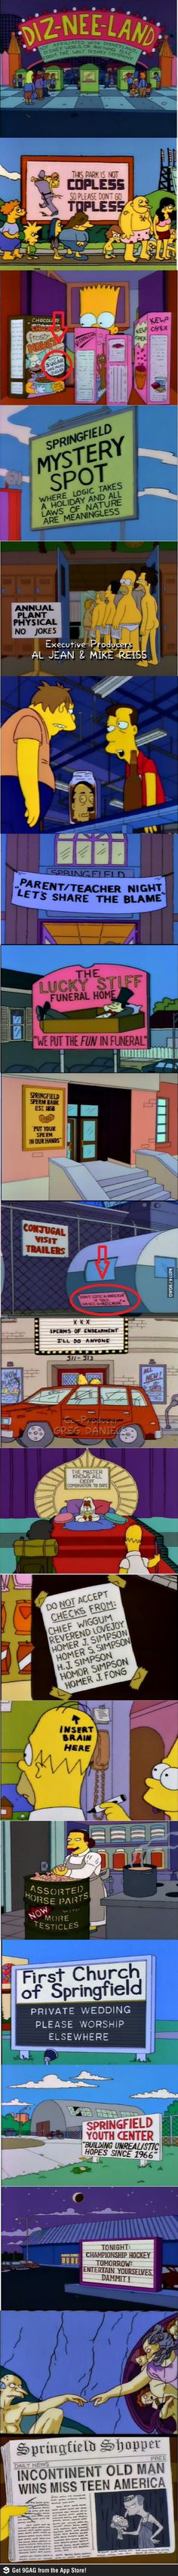 Only in The Simpsons